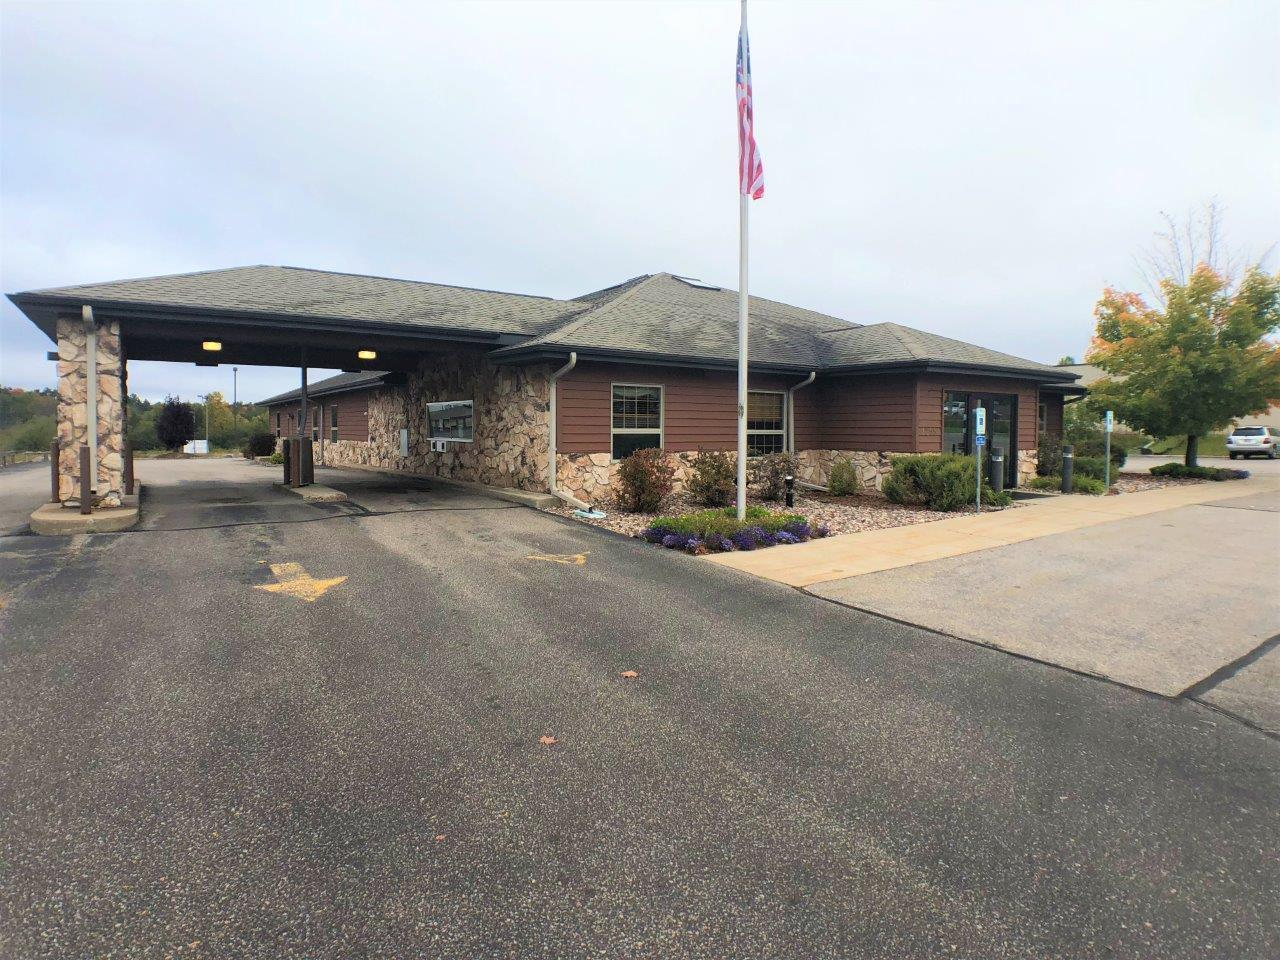 Office Building/ Retail Space/ Commercial property. Lincoln St. is the busiest commercial corridor in Rhinelander, WI, and here is a prime piece of real estate located right in the heart of it all. This building offers a total of 8,982 sqft with the main level accounting for 4,527 sqft and the lower level accounting for the other 4,455 sqft. The upper level consist of 2 large lobby area's/ a counter area formerly used for bank tellers/ 3 bathrooms/ 10 offices and a conference room/ storage areas and a vault. The lower level consists of a large mechanical or storage room that is unfinished/ a second mechanical room/ file room with shelving/ employee break room/ 4 offices or work rooms/ 2 bathrooms. This property consists of 1.14 acres of land with 2 curb cuts onto Lincoln St. and has over 40 private parking spaces. There is also a covered drive up if your business could utilize that convenience. The building is in very good shape and ready for you to view today!